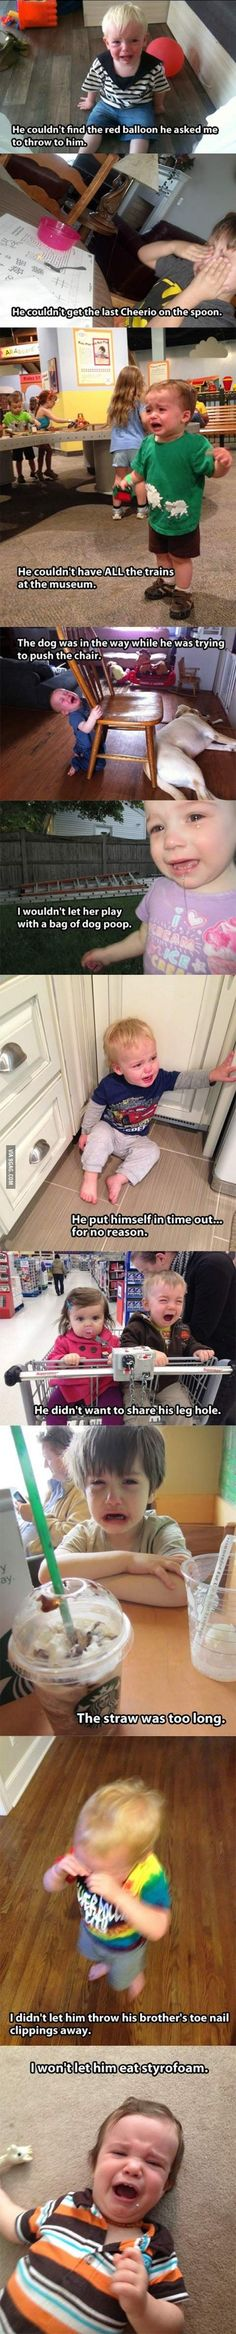 It's so hard being a toddler!